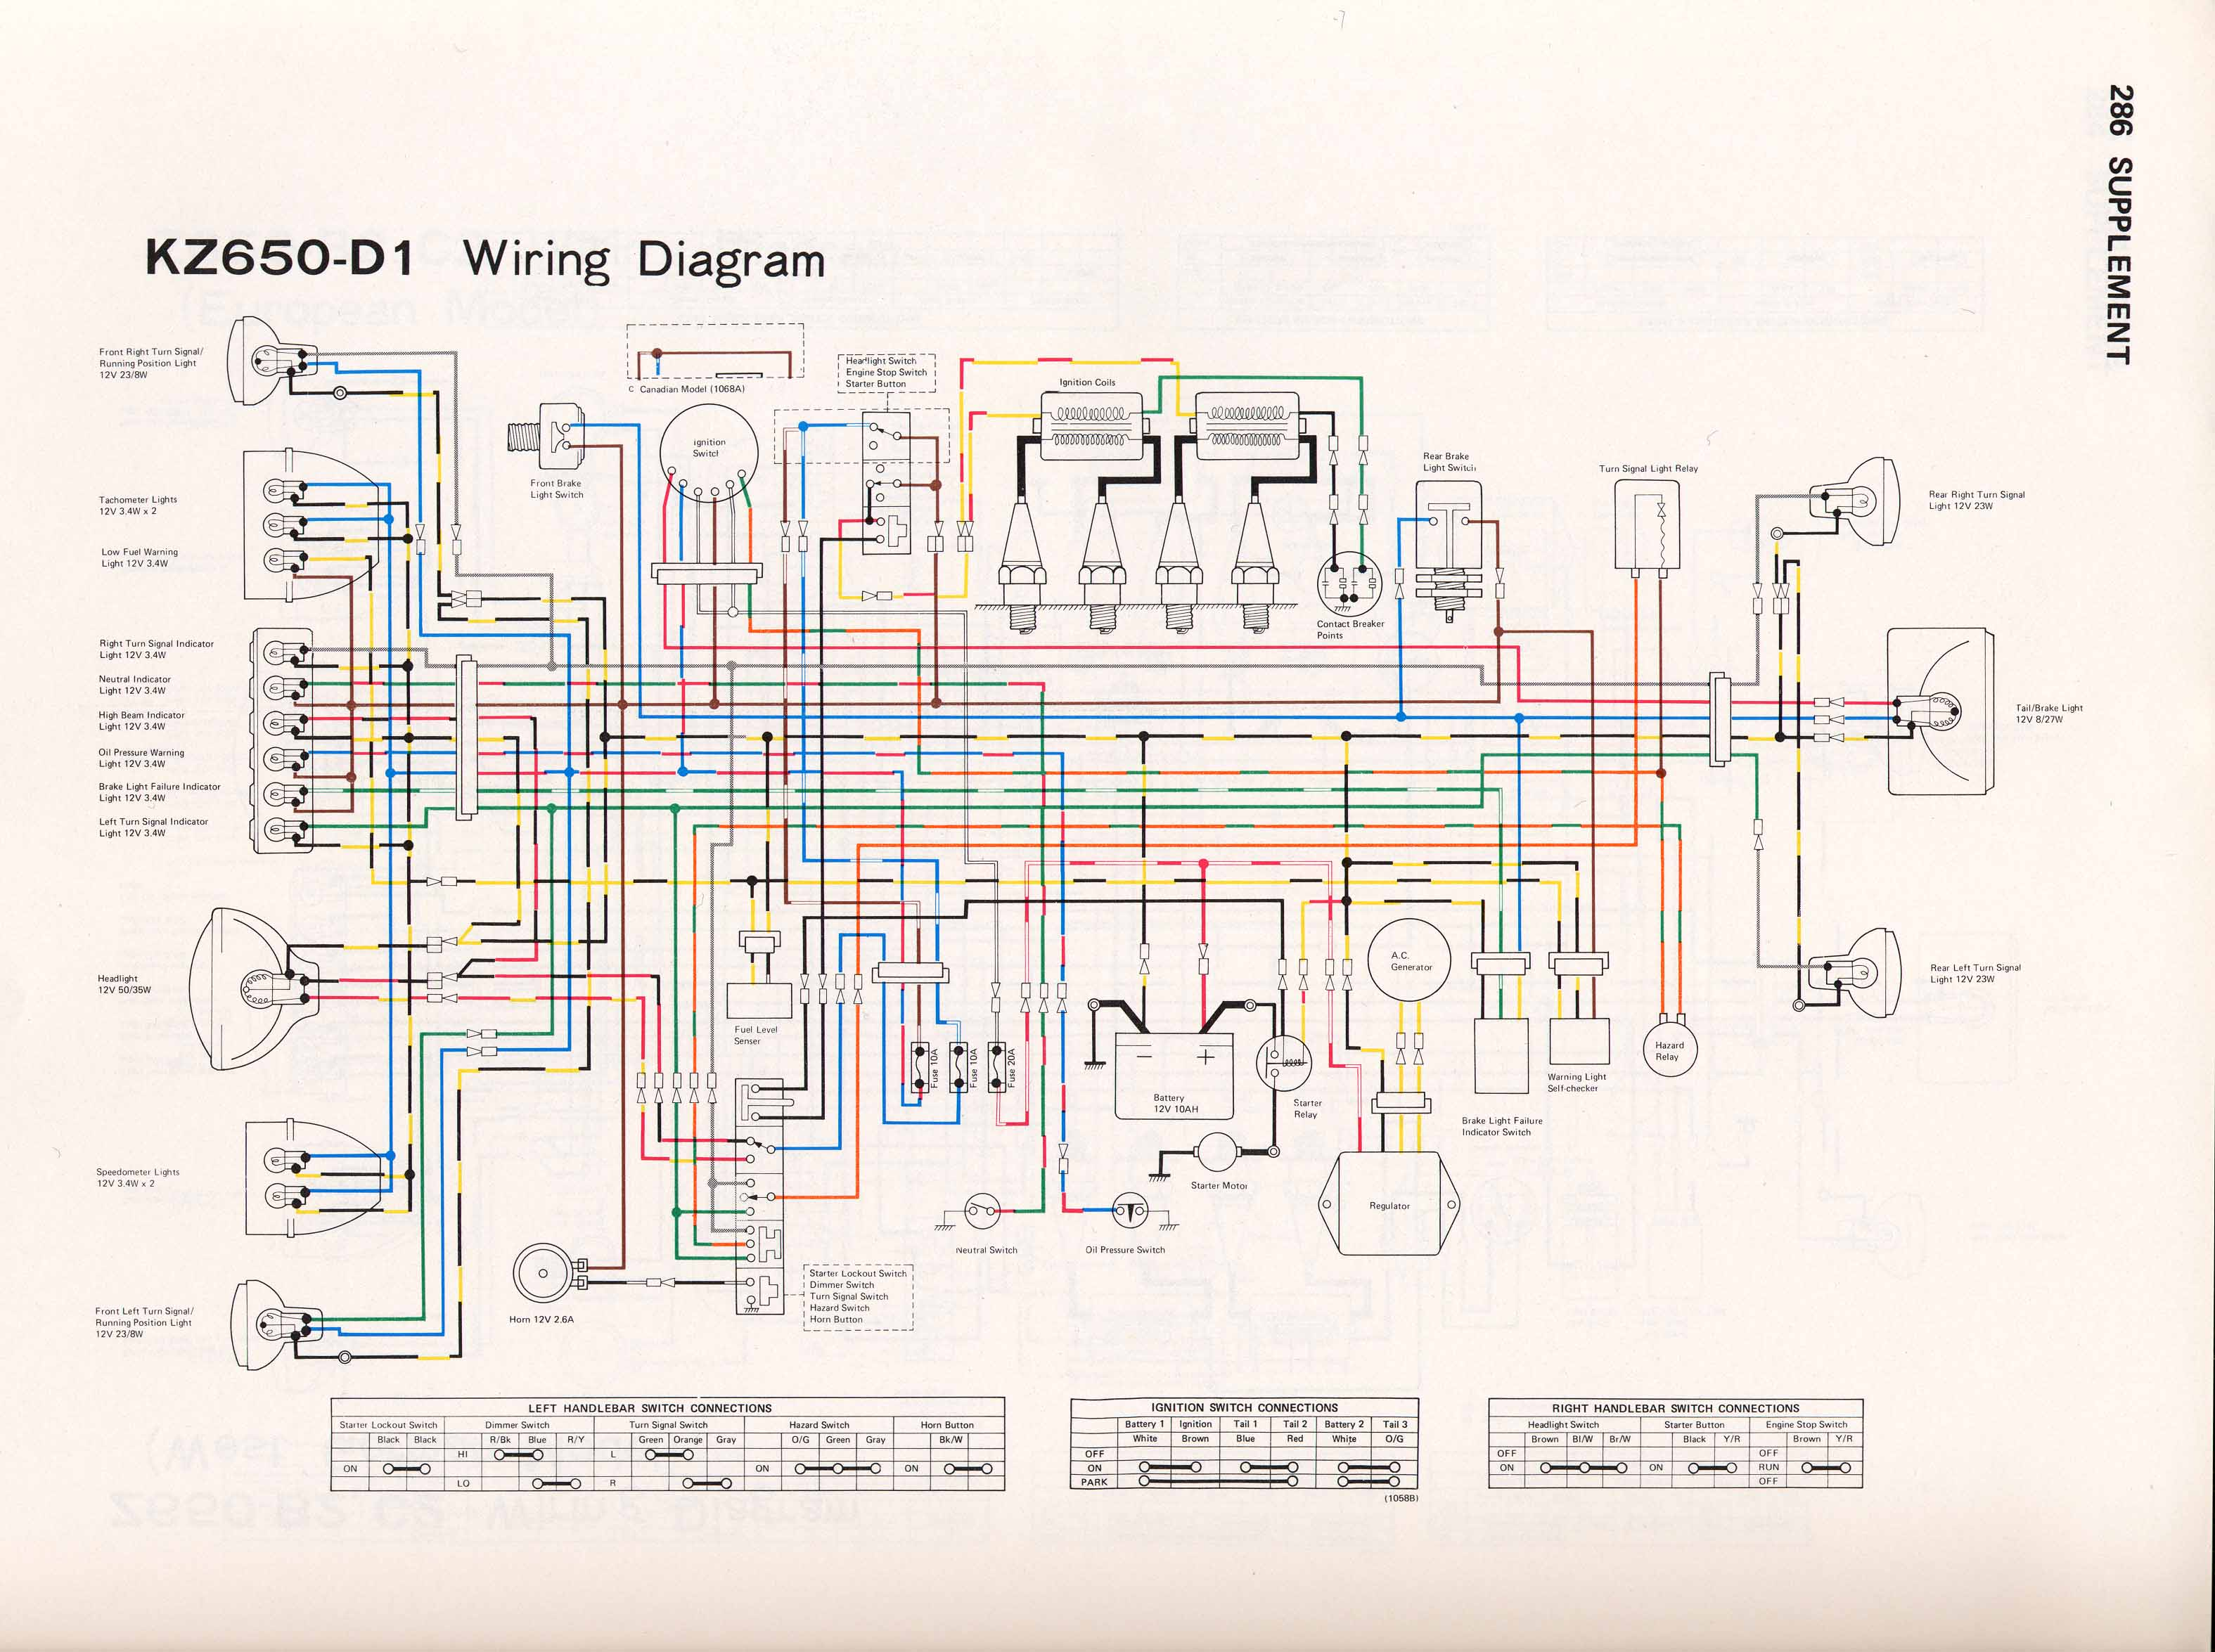 Diagram Wiring Kz650 E1 - Wiring Diagrams List